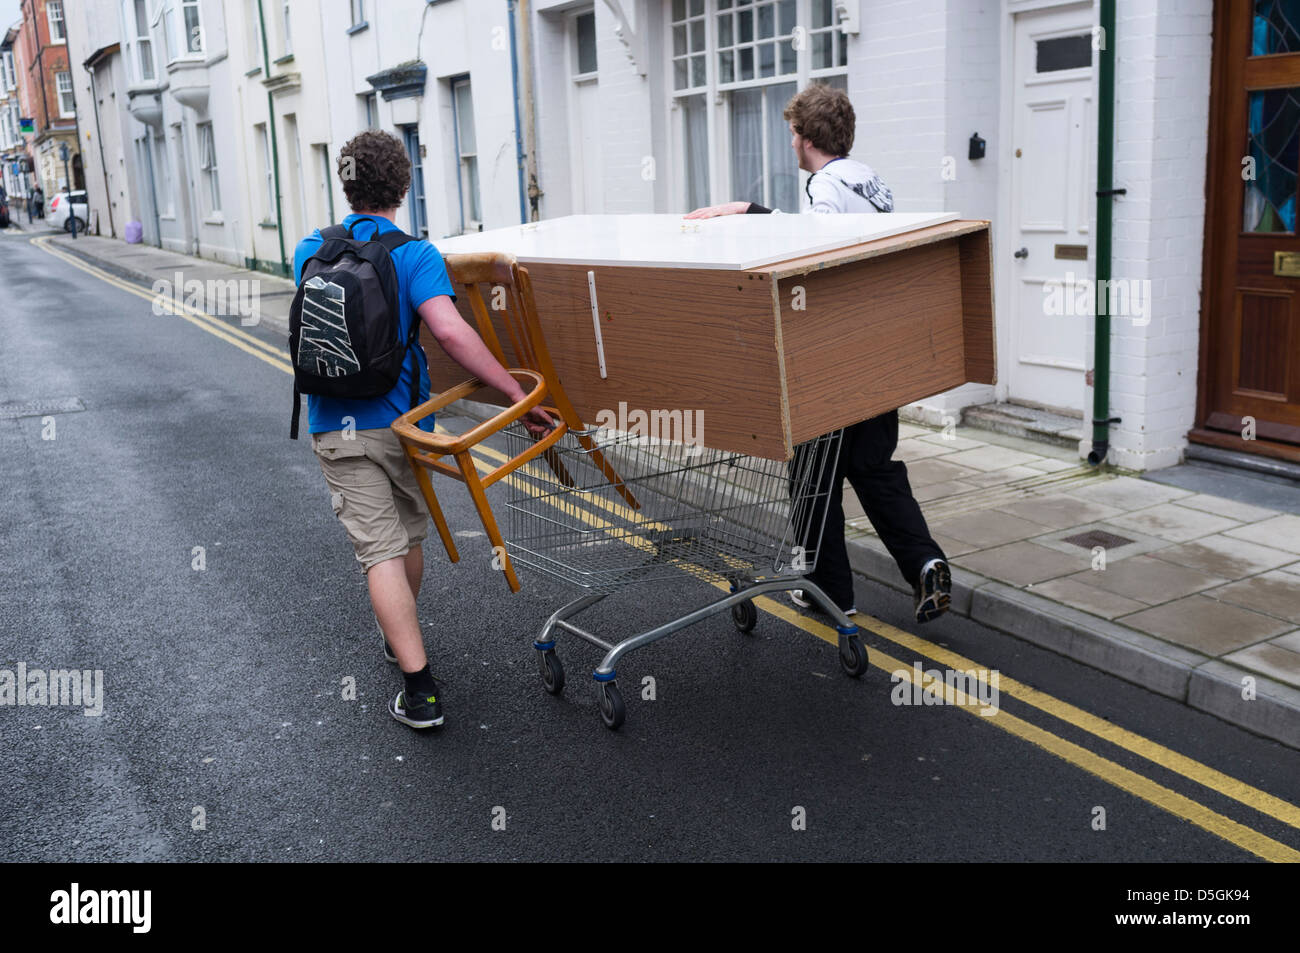 Two Students People Men Moving Furniture Wheeling A Wardrobe On A Shopping  Trolley Aberystwyth Wales Uk